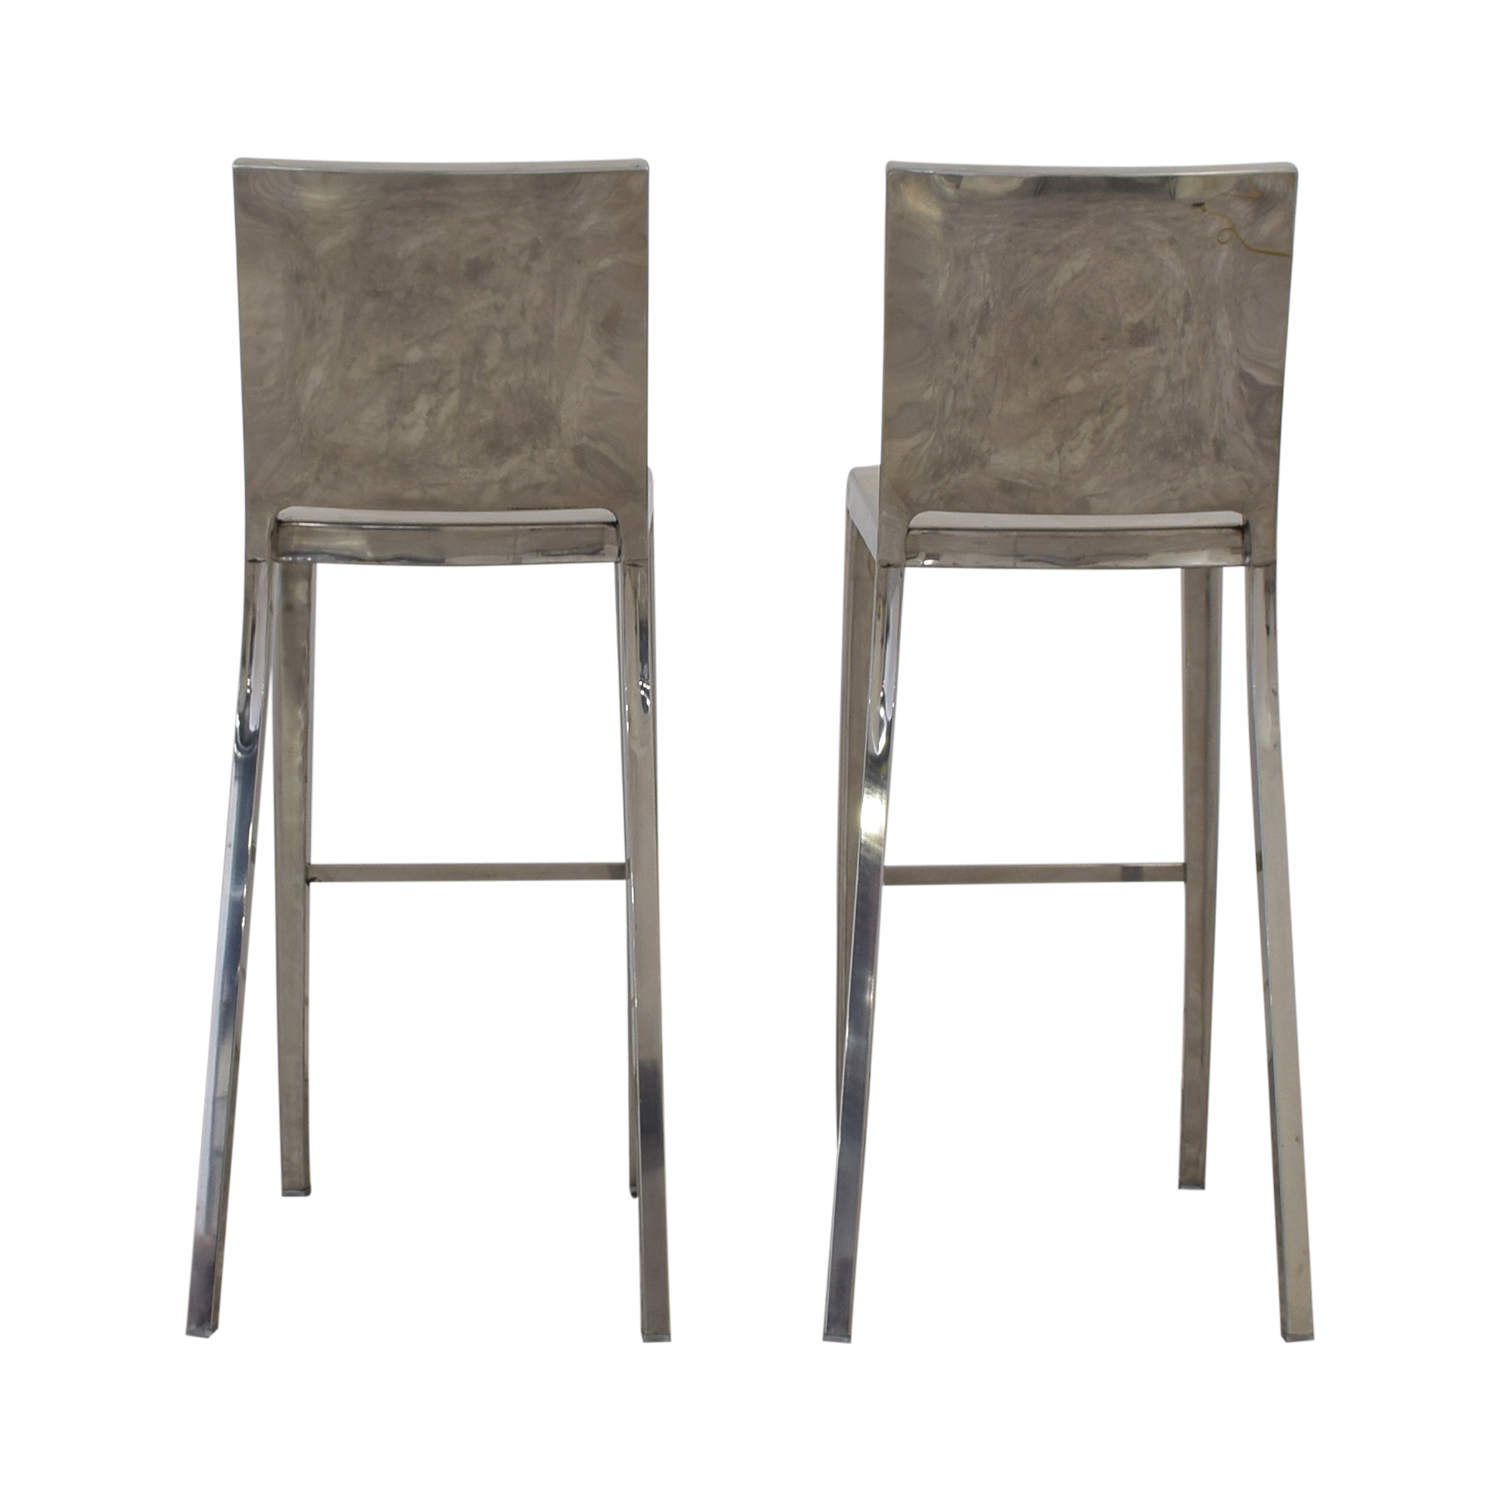 Modani Modani Bar Stools coupon